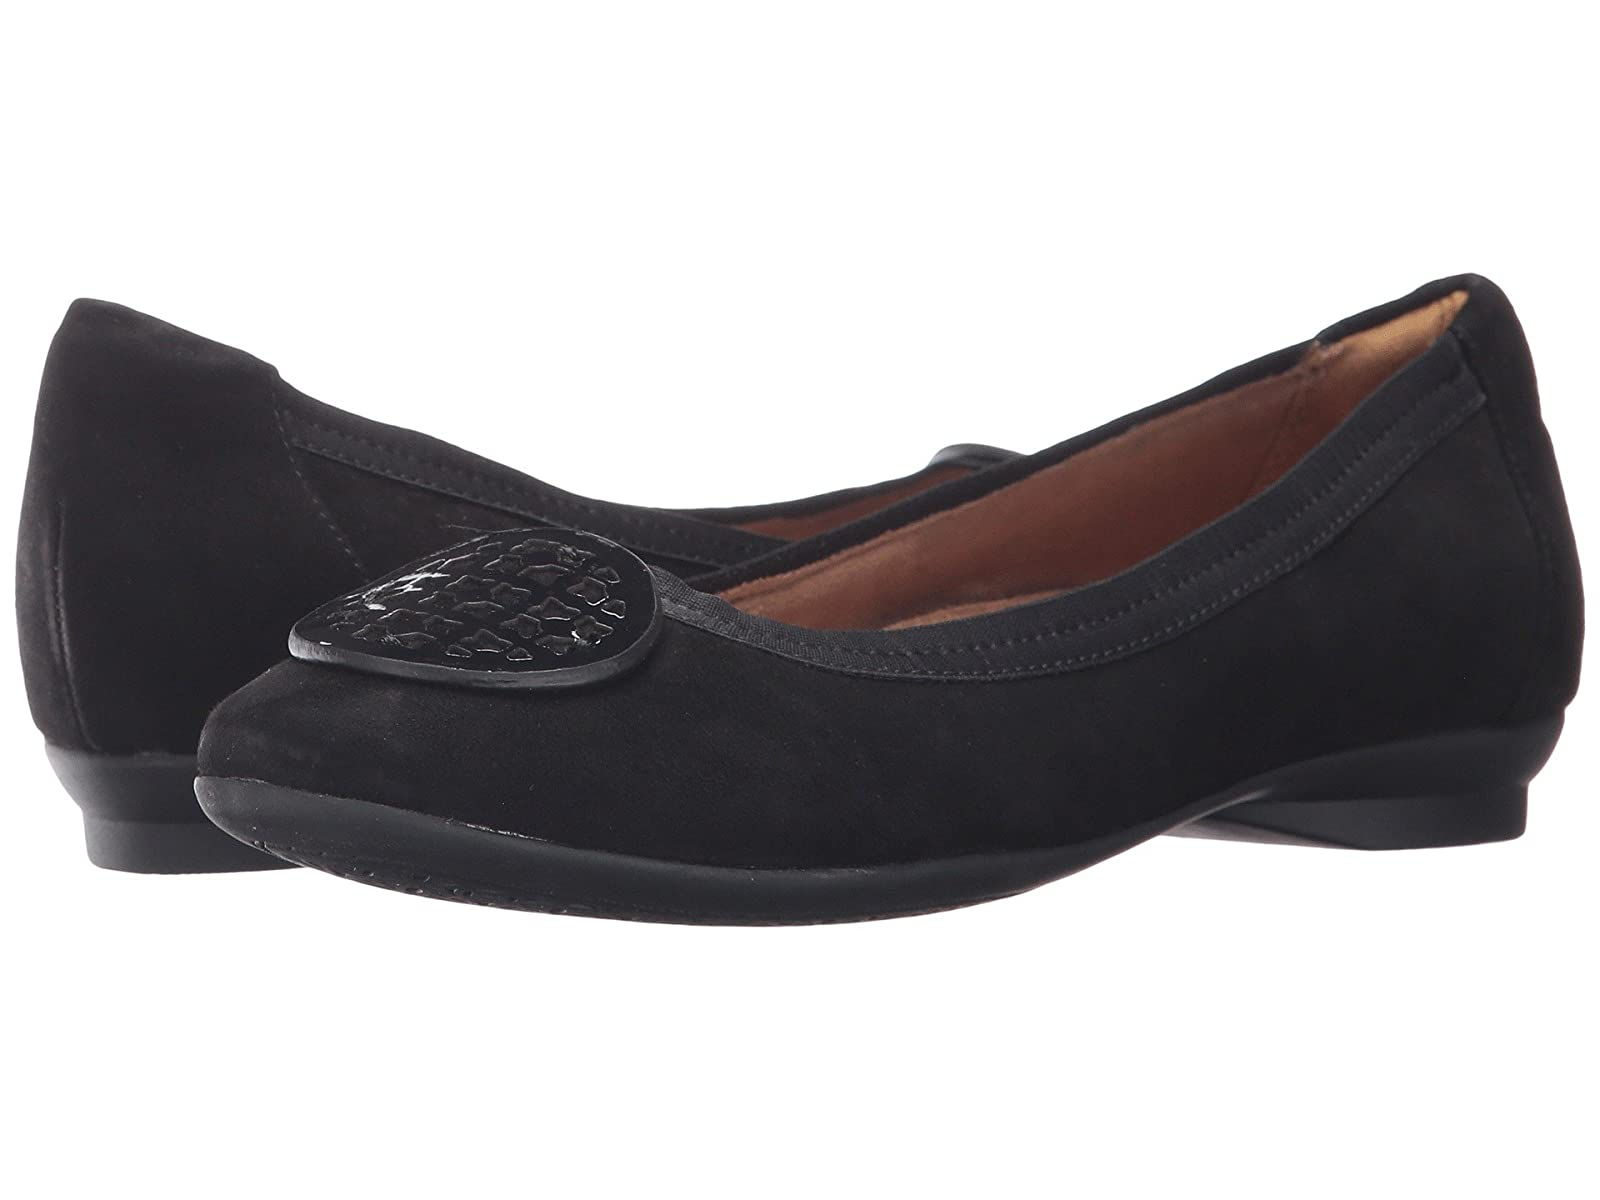 Clarks Candra BlushCheap and distinctive eye-catching shoes